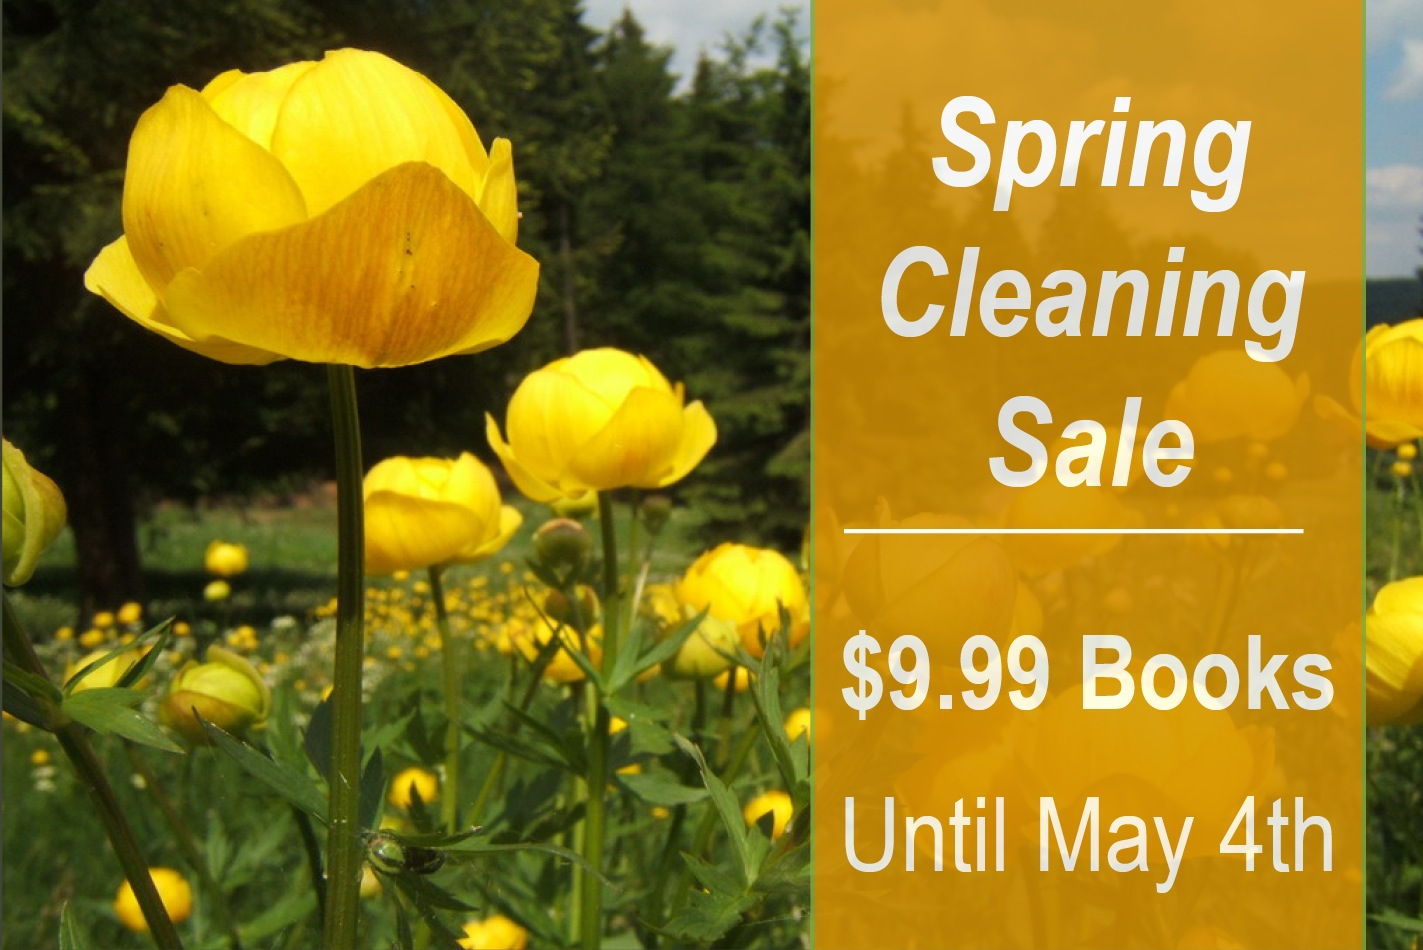 Spring Cleaning Sale: $9.99 Books